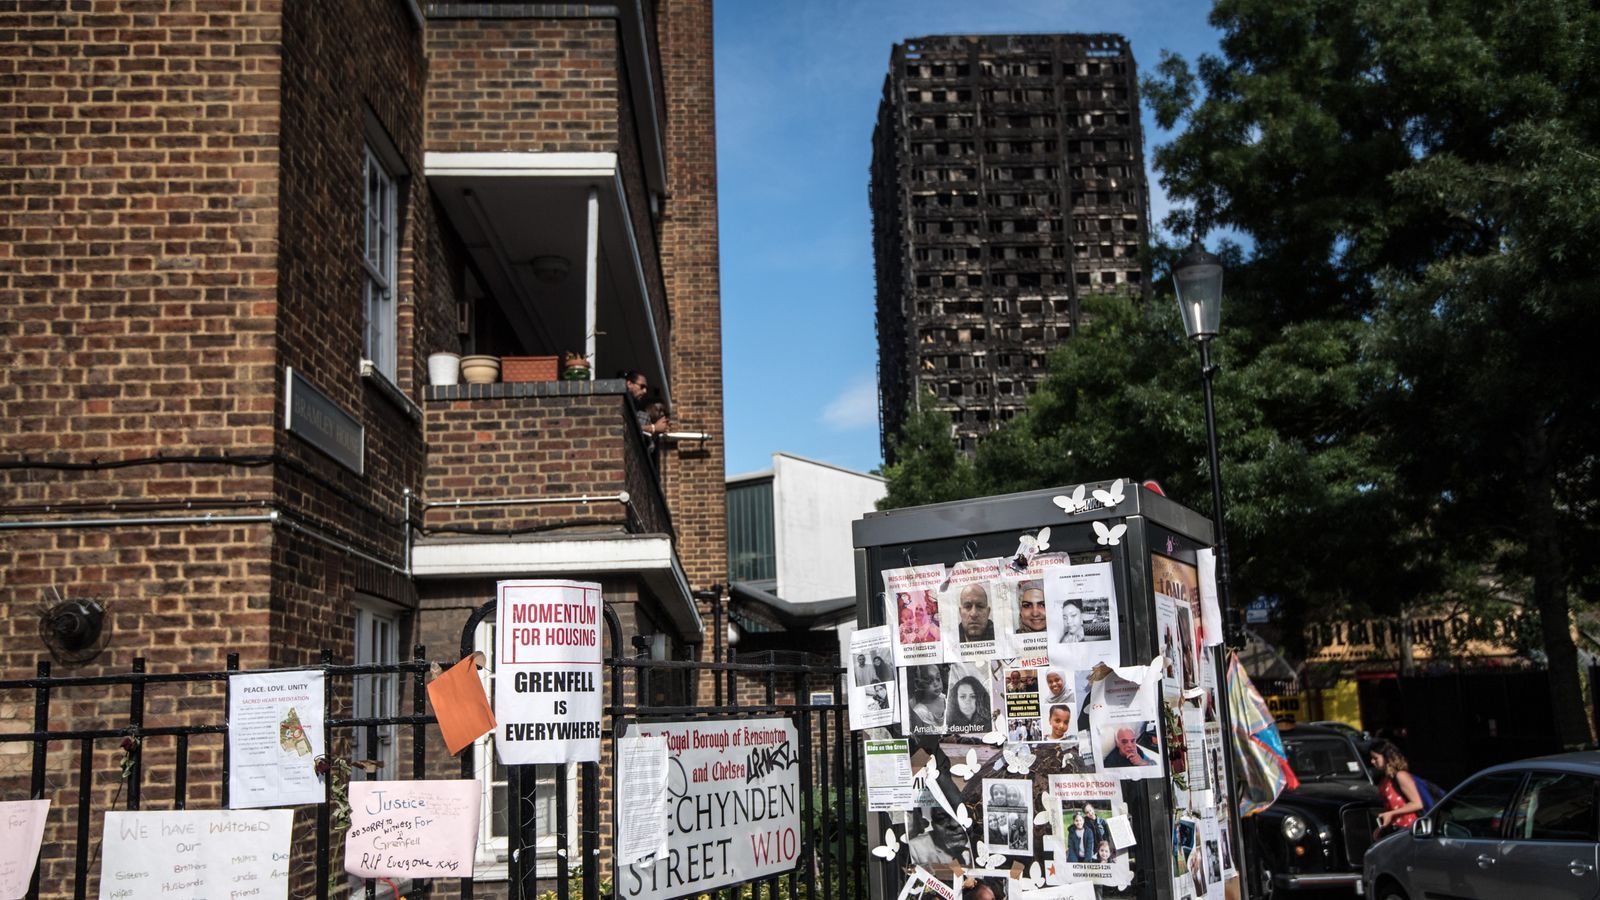 Grenfell Tower fire: Local council boss quits